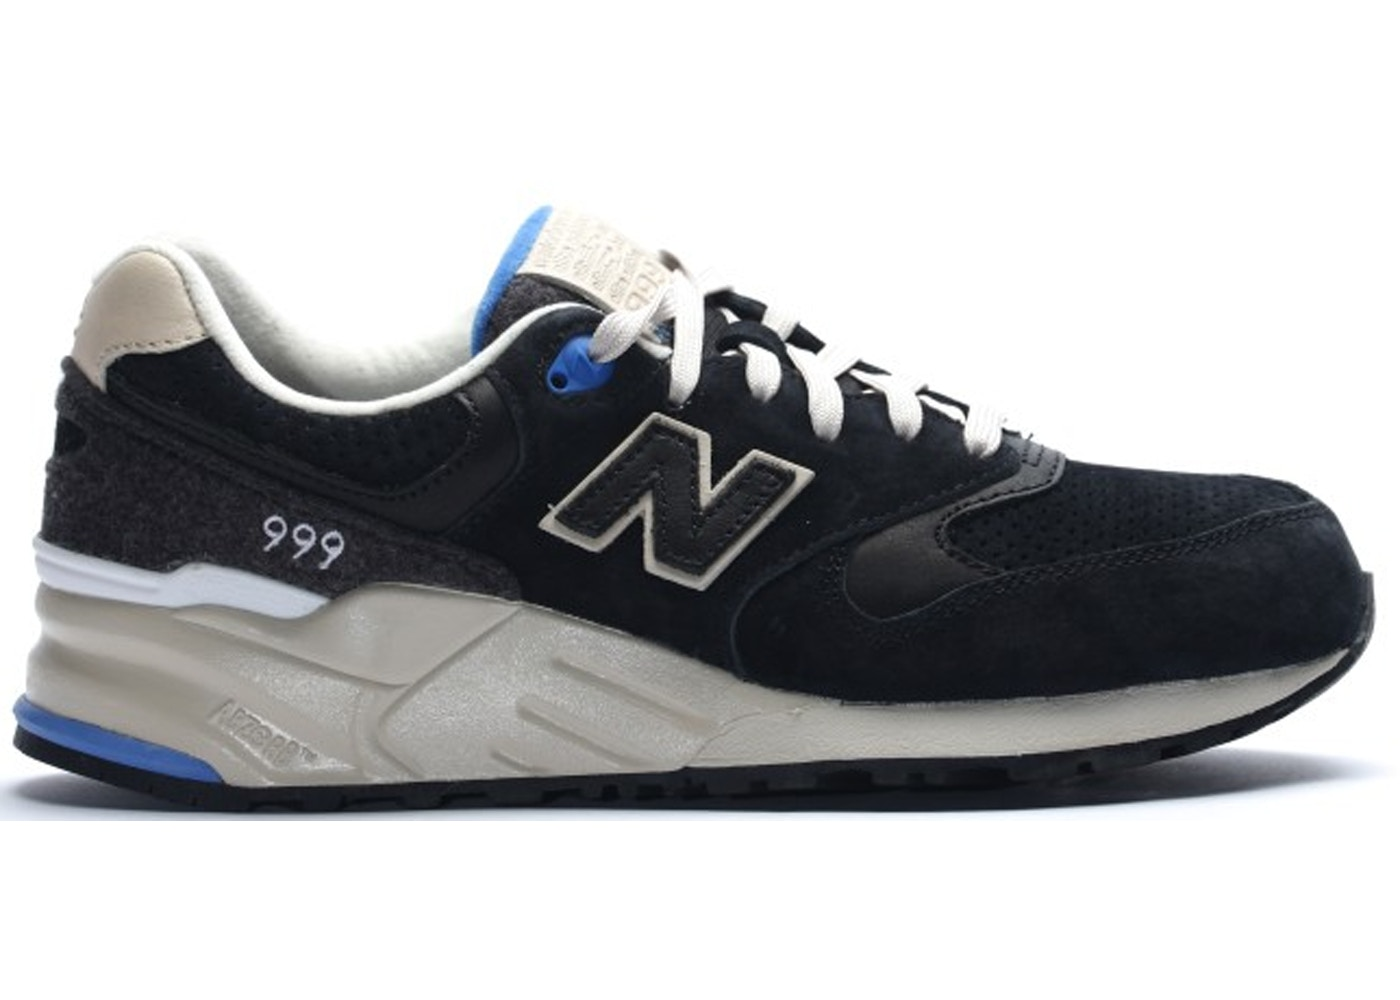 official photos 66aa5 fd9e0 New Balance Size 7.5 Shoes - New Lowest Asks